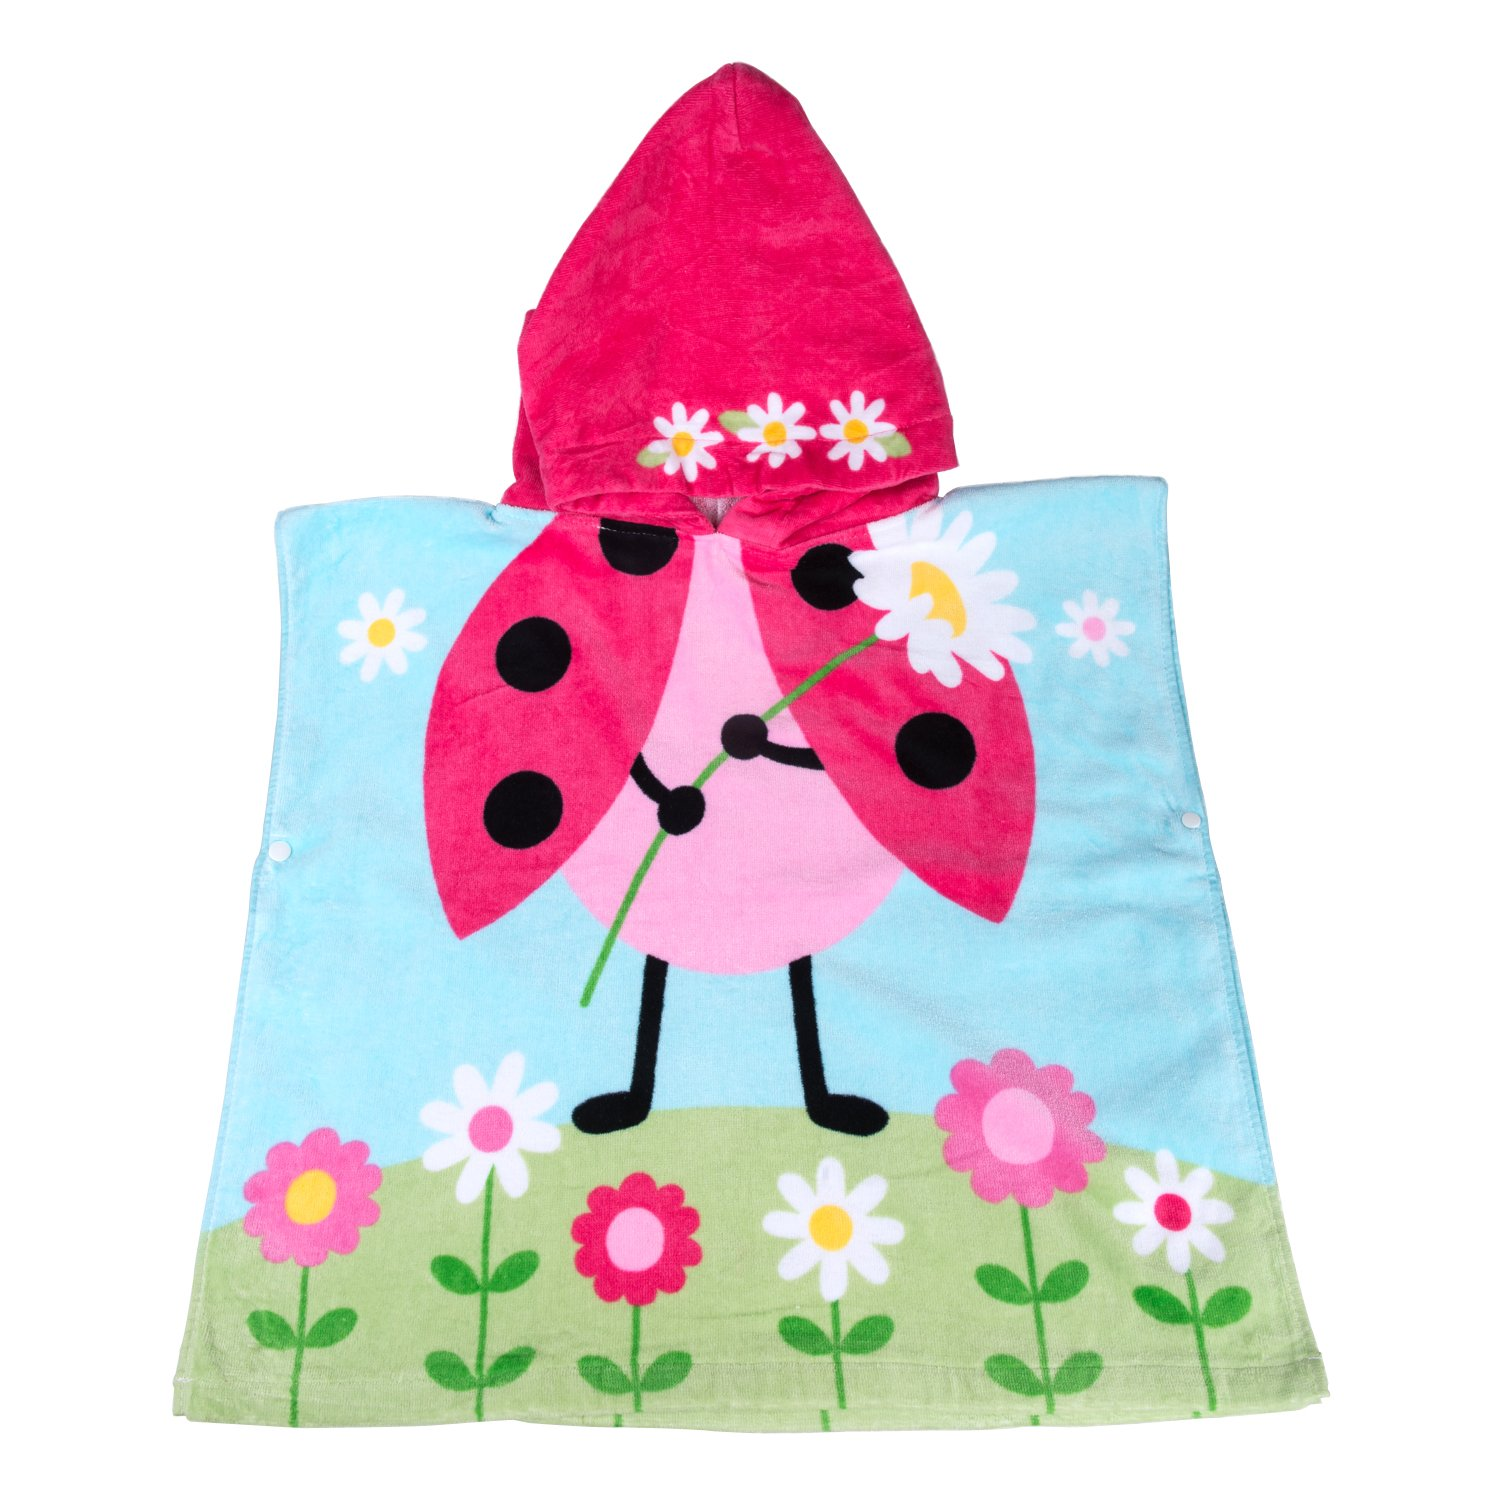 Florica Cotton Kids Childs Boys Girls Lovely Hooded Ponchos Swimming Bath Towel (Beetles) China